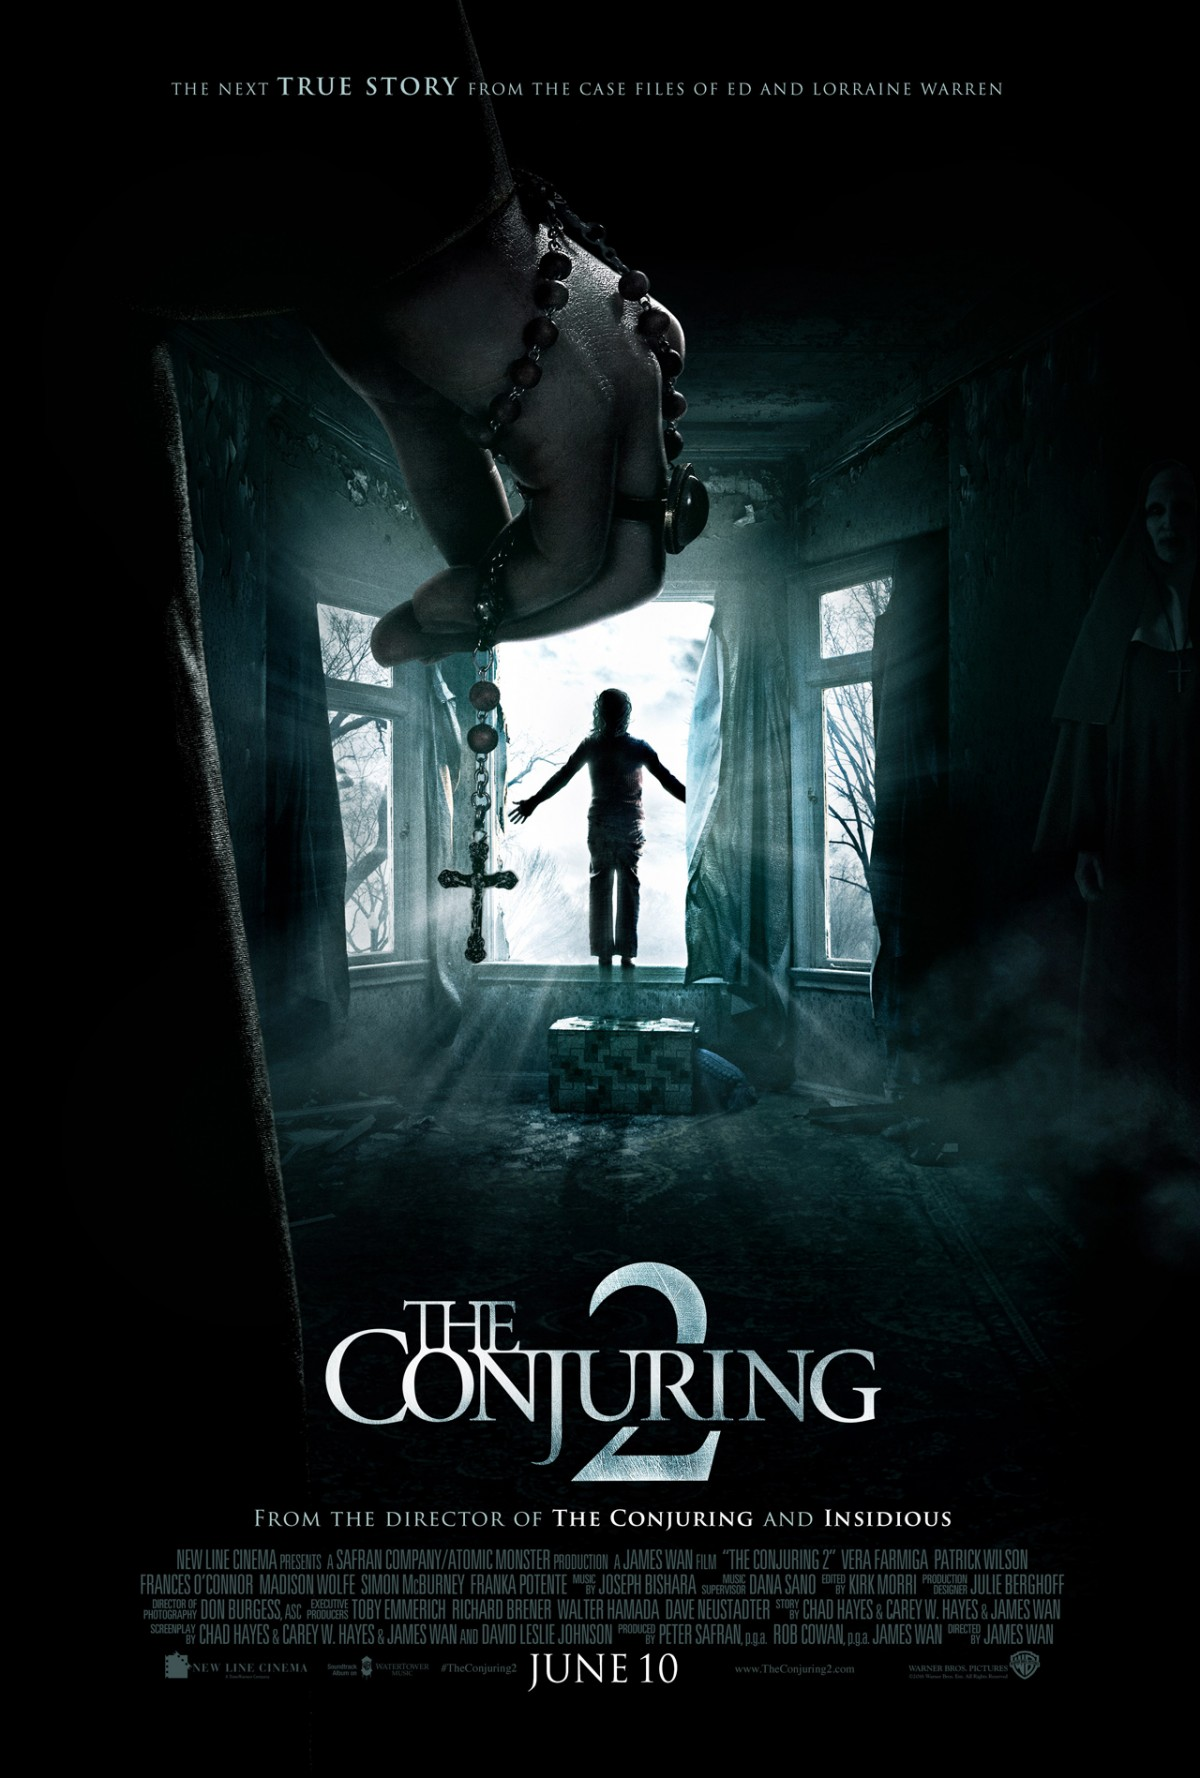 The Conjuring 2 2016 Reviews - 2 Times Make Audiences Scared